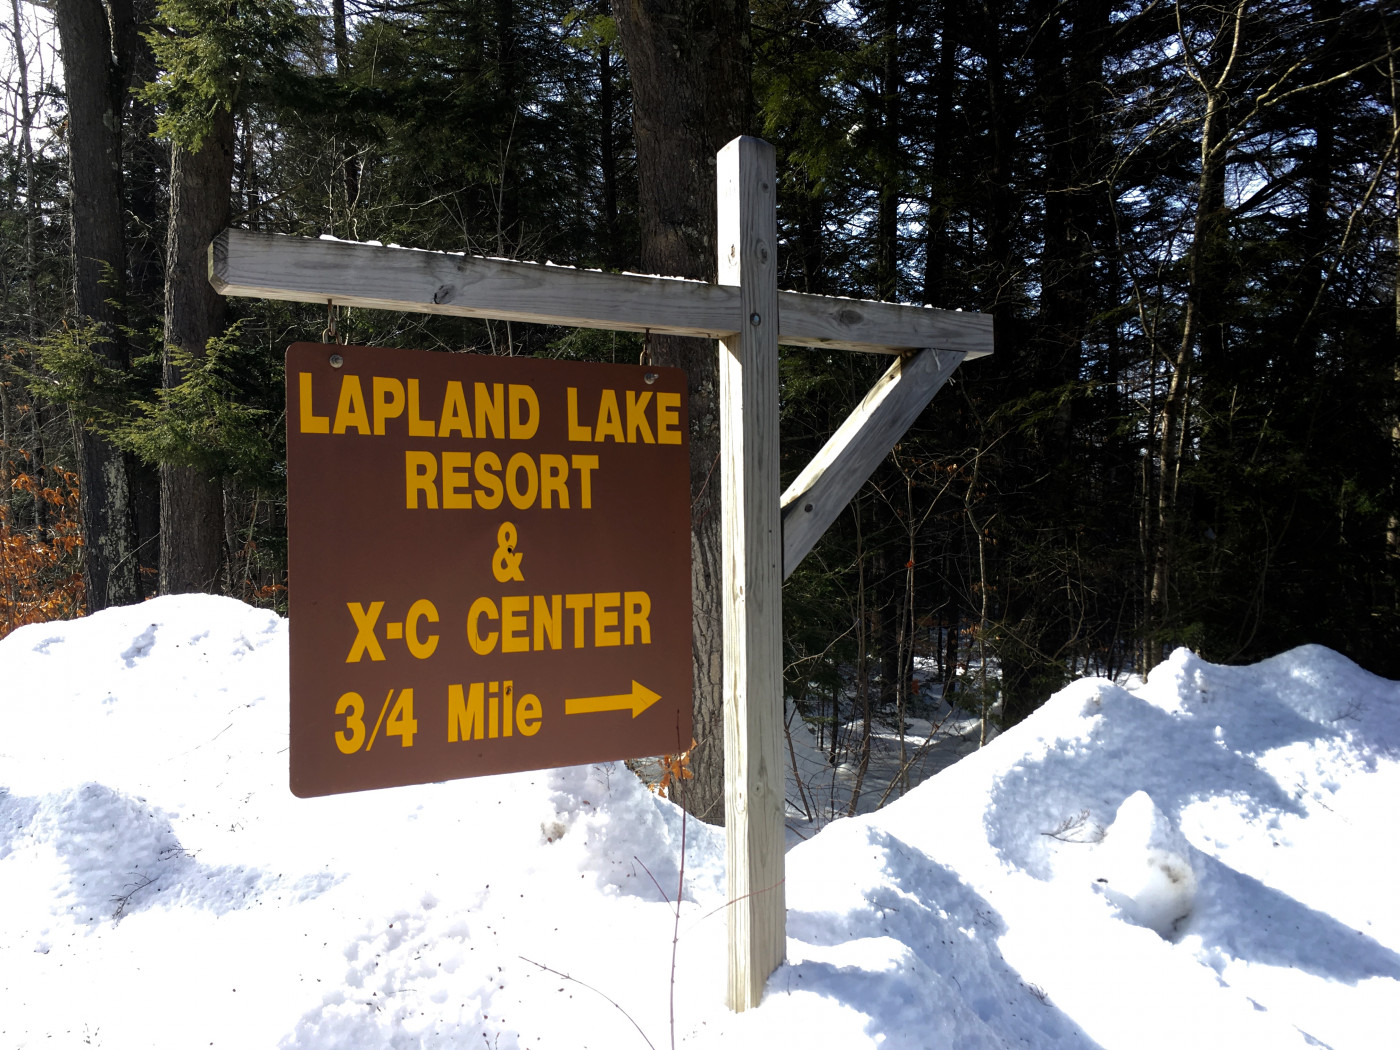 Sign for Lapland Lake Resort & X-C Center